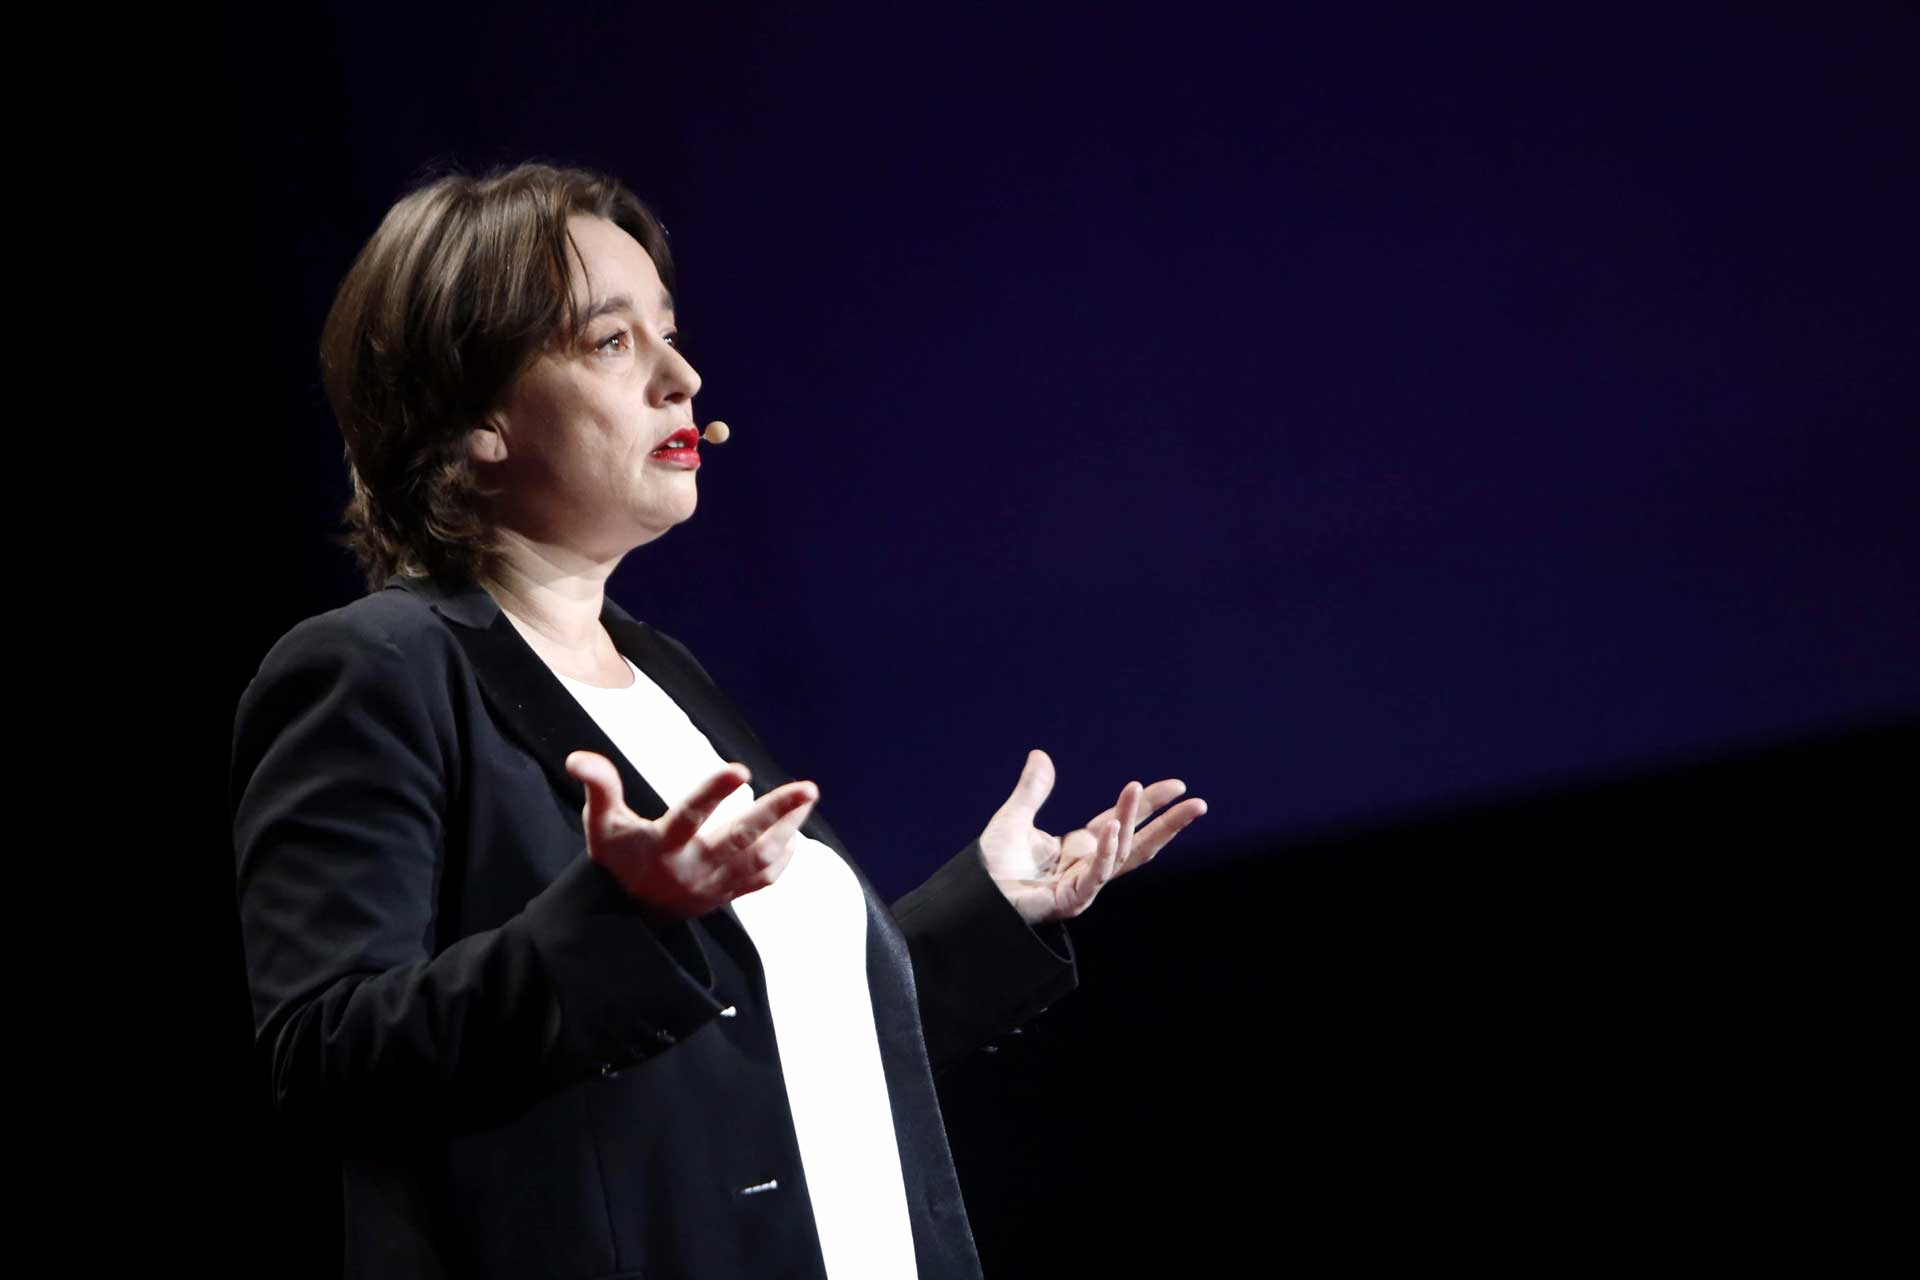 conference-TEDxParis-2013-11.jpg